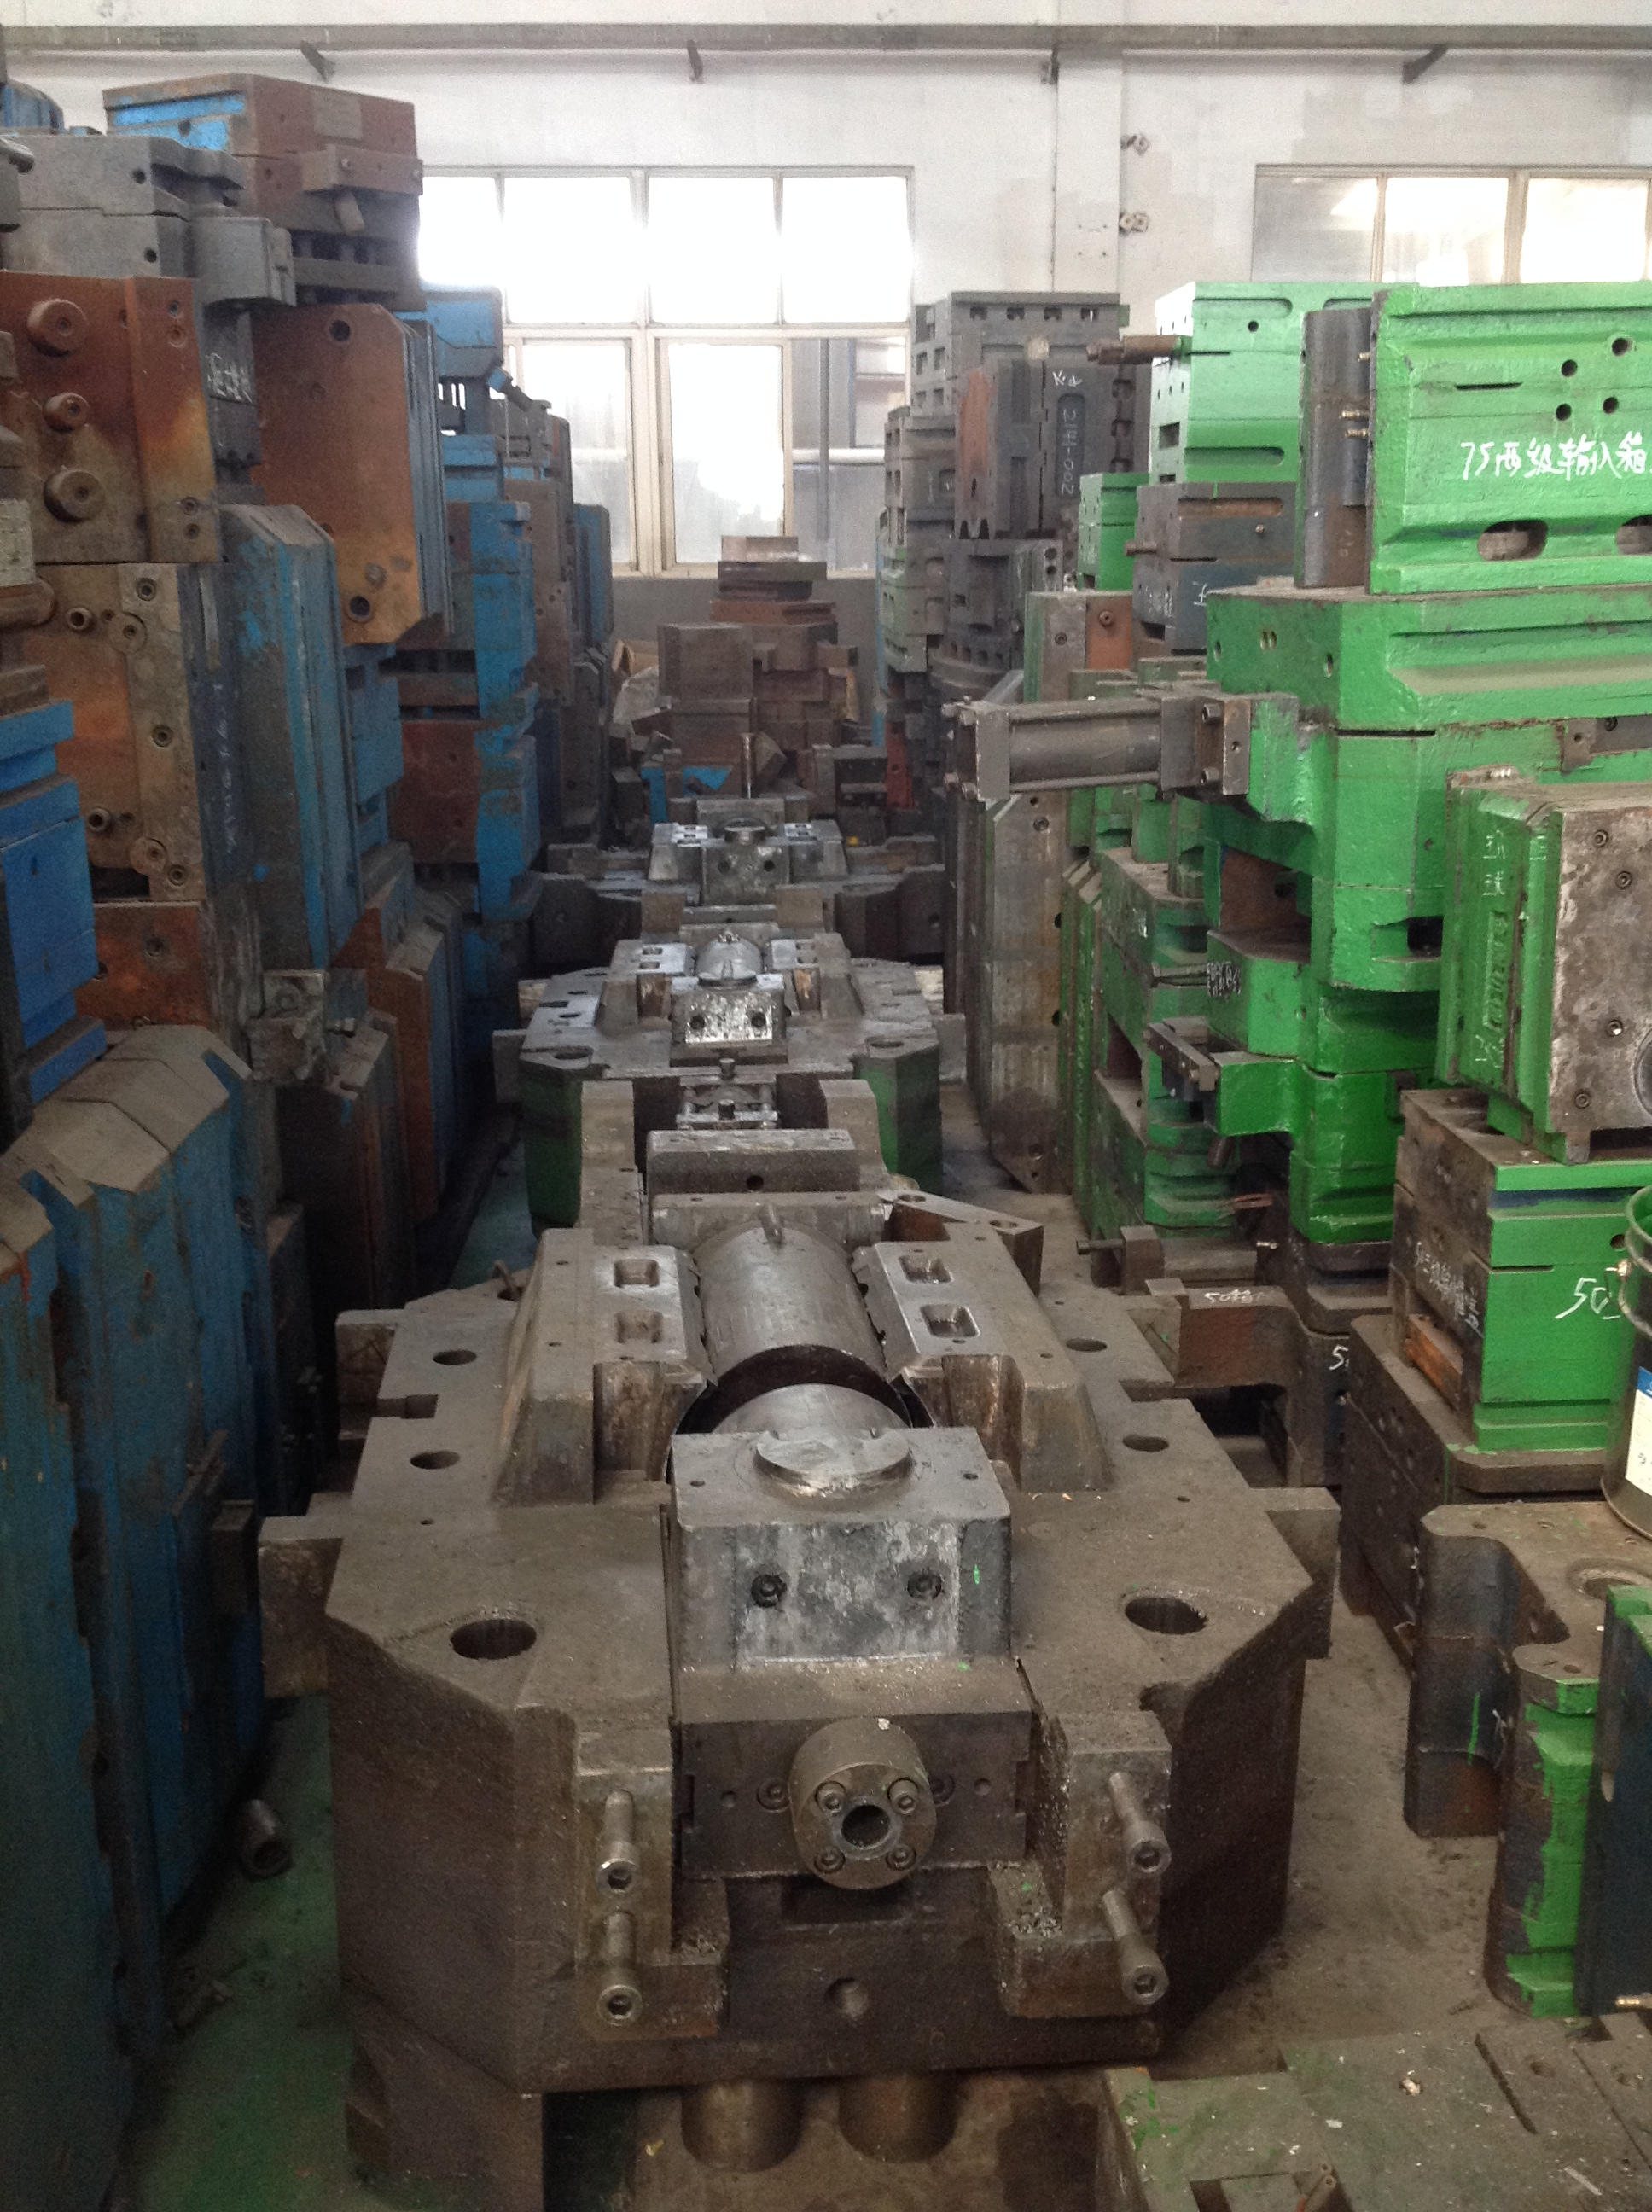 Large injection moulding tools in storage